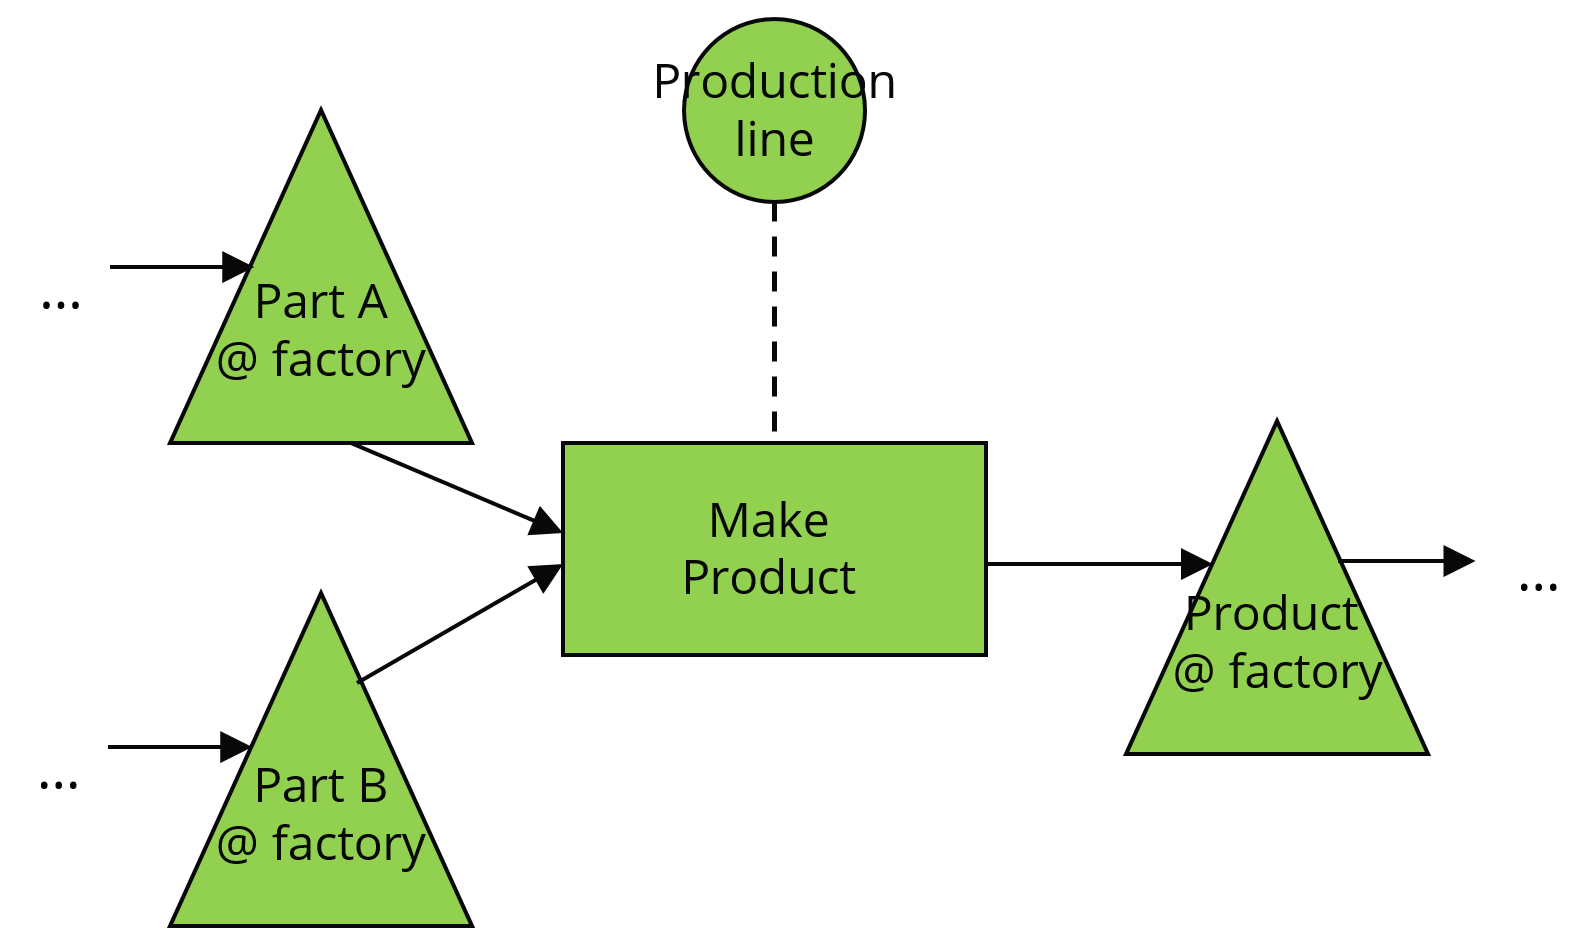 Modeling - Manufacturing operation